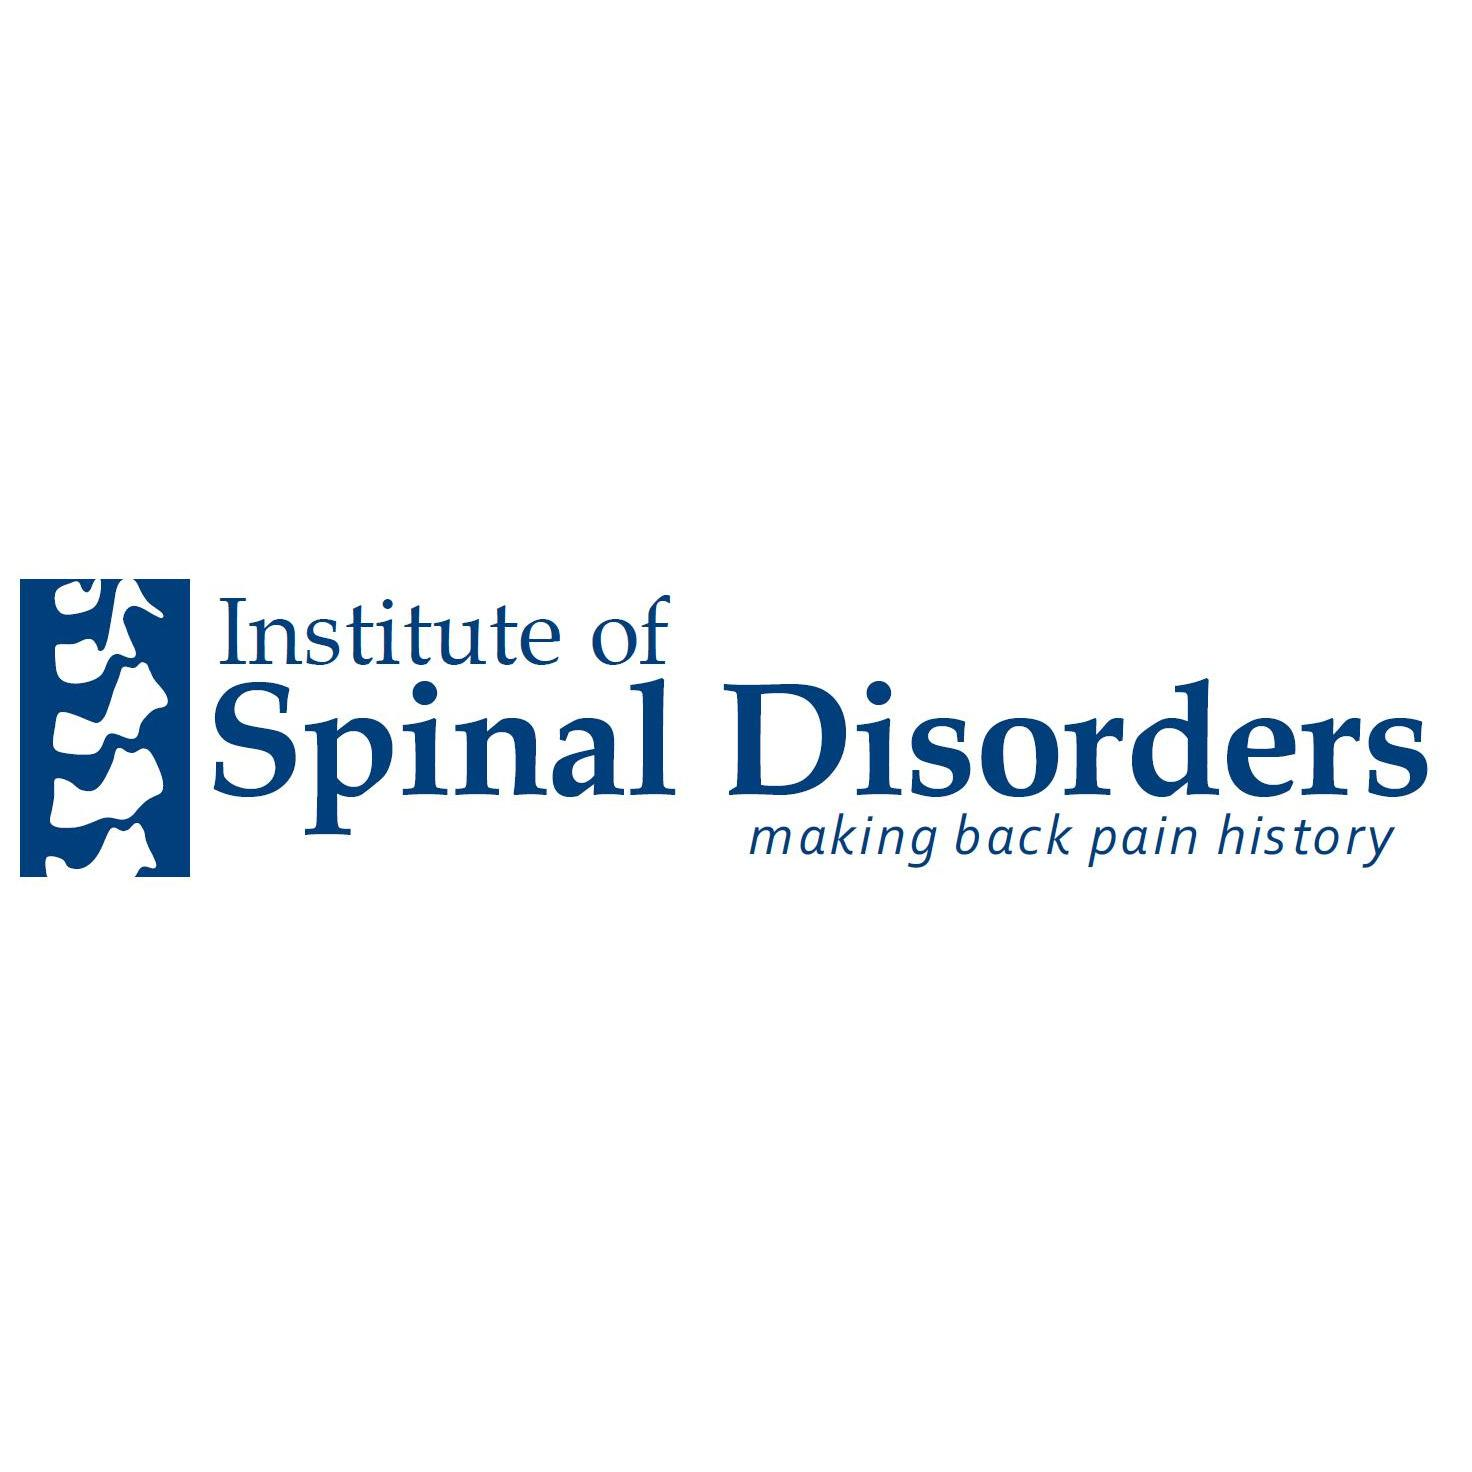 Institute of Spinal Disorders